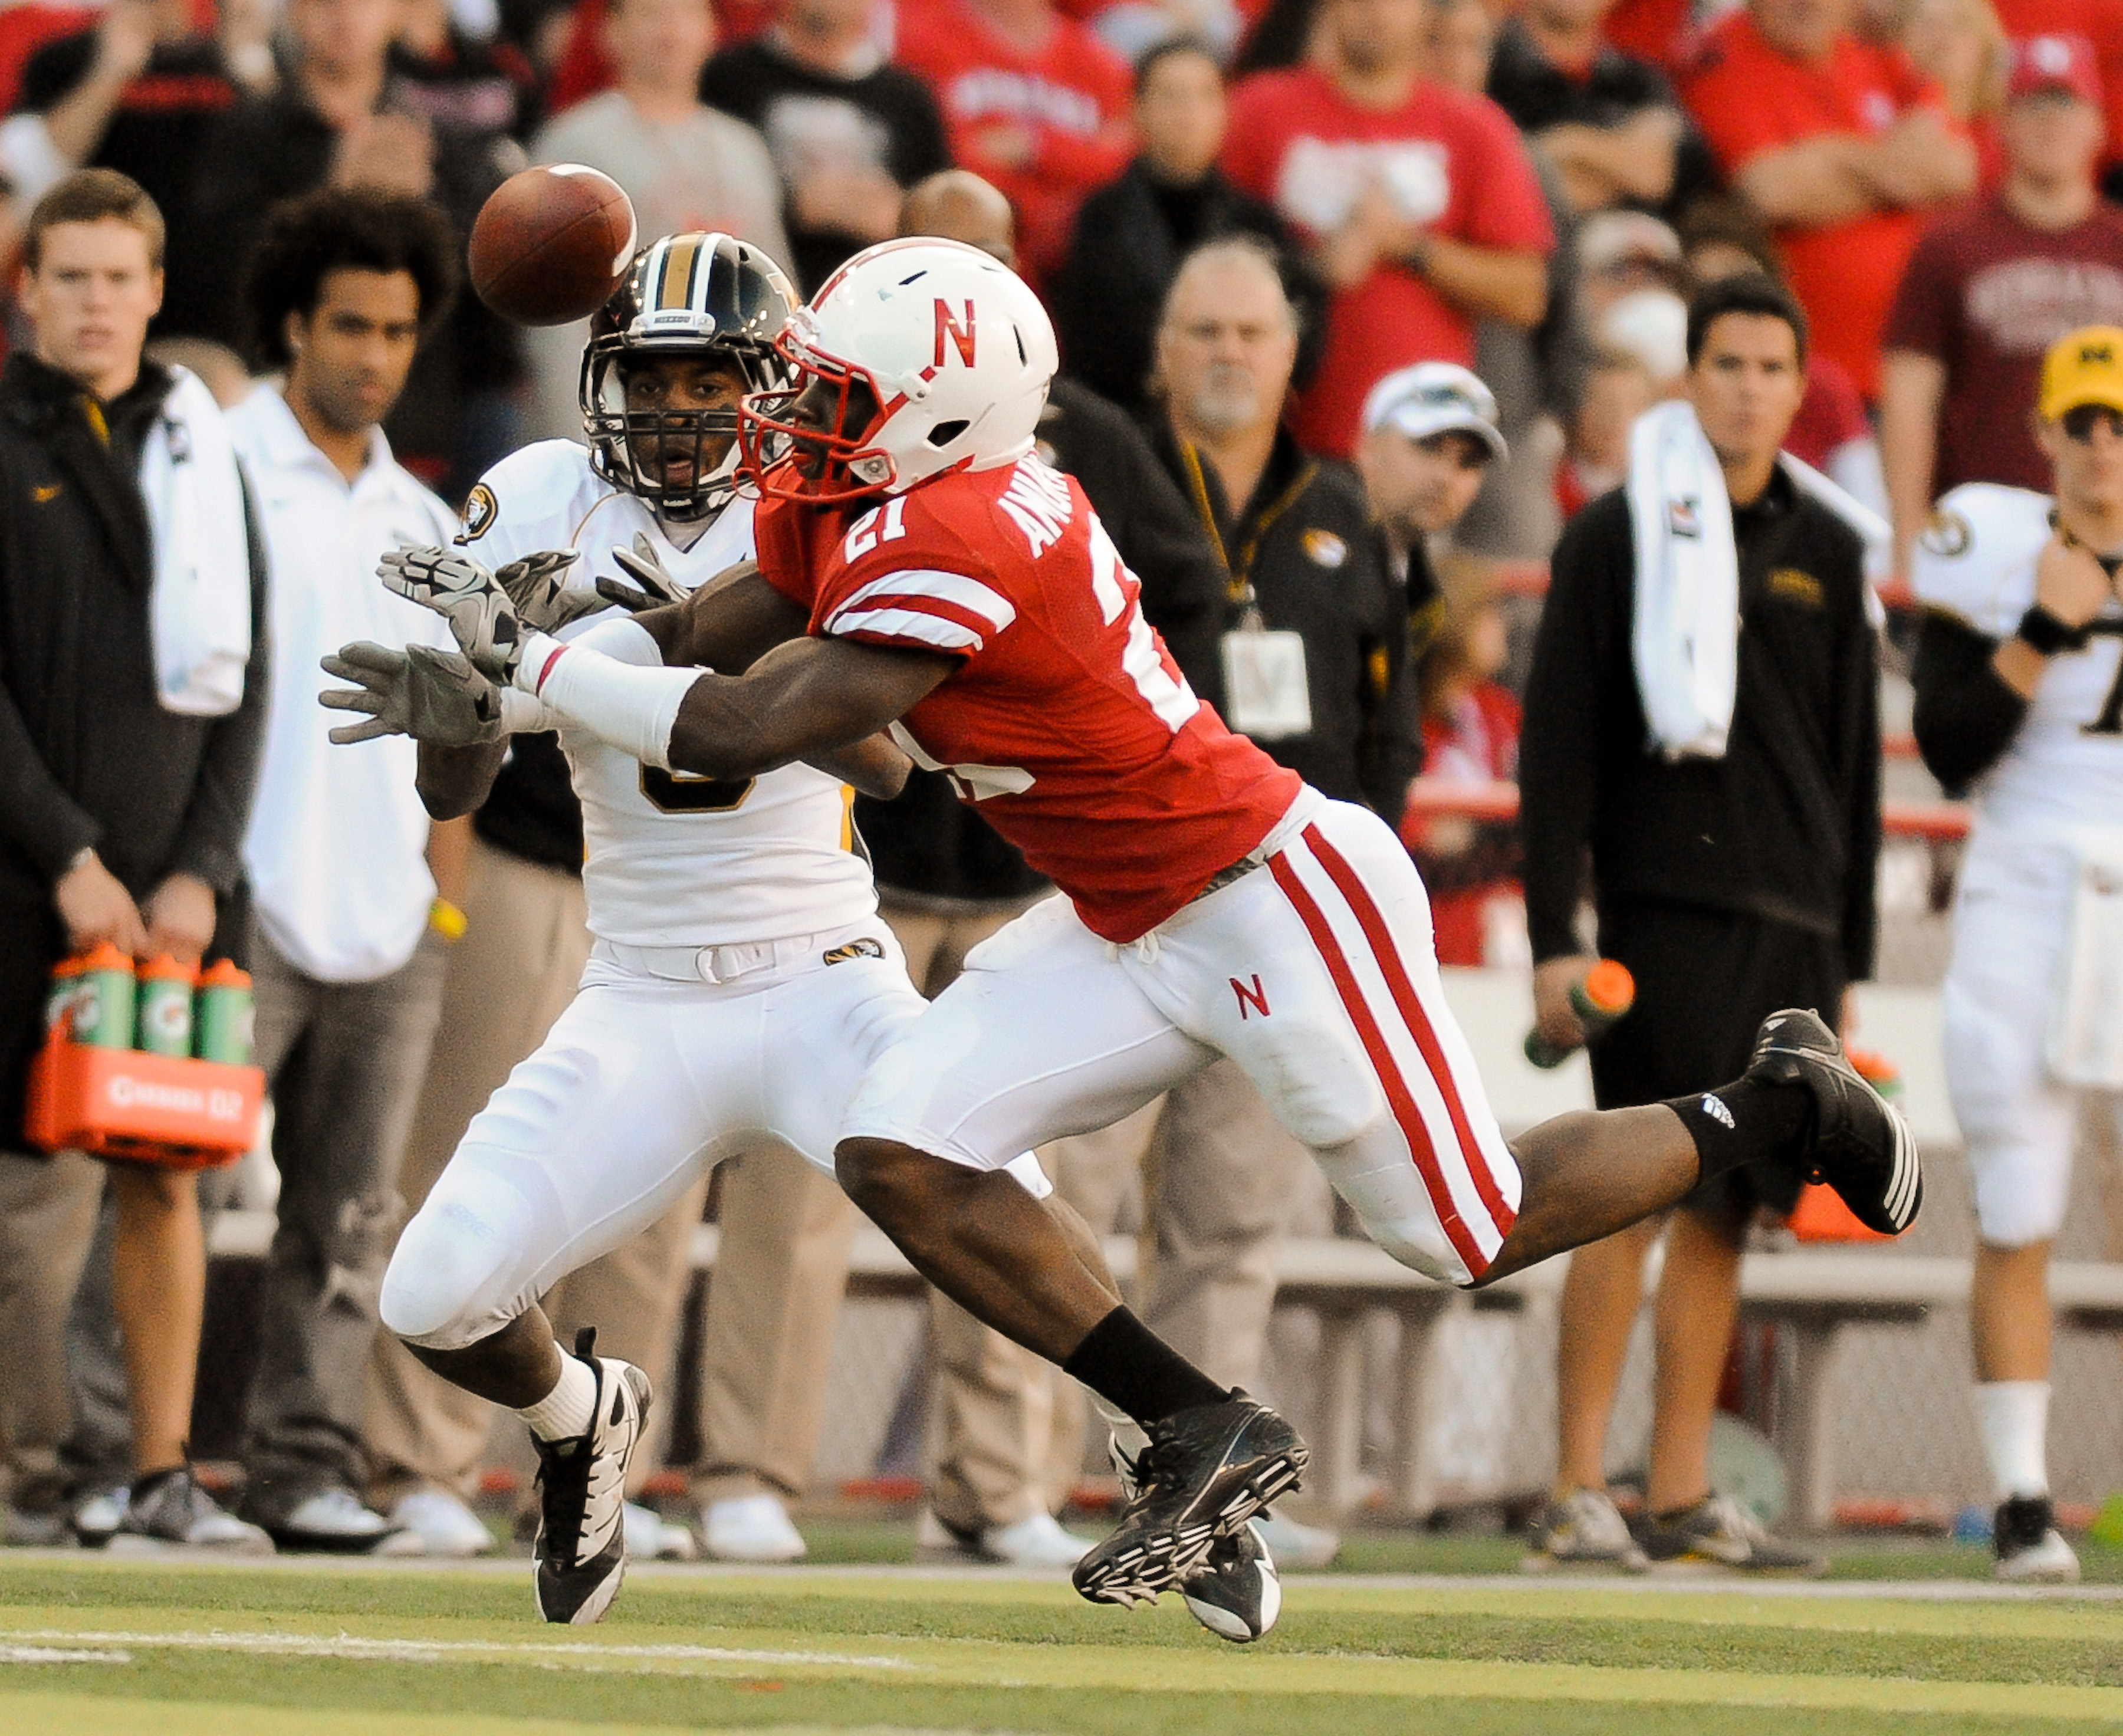 LINCOLN, NE - OCTOBER 30: Cornerback Prince Amukamara #21 of the Nebraska Cornhuskers breaks up a pass intended wide receiver Wes Kemp #8 of the during second half action of their game at Memorial Stadium on October 30, 2010 in Lincoln, Nebraska. Nebraska